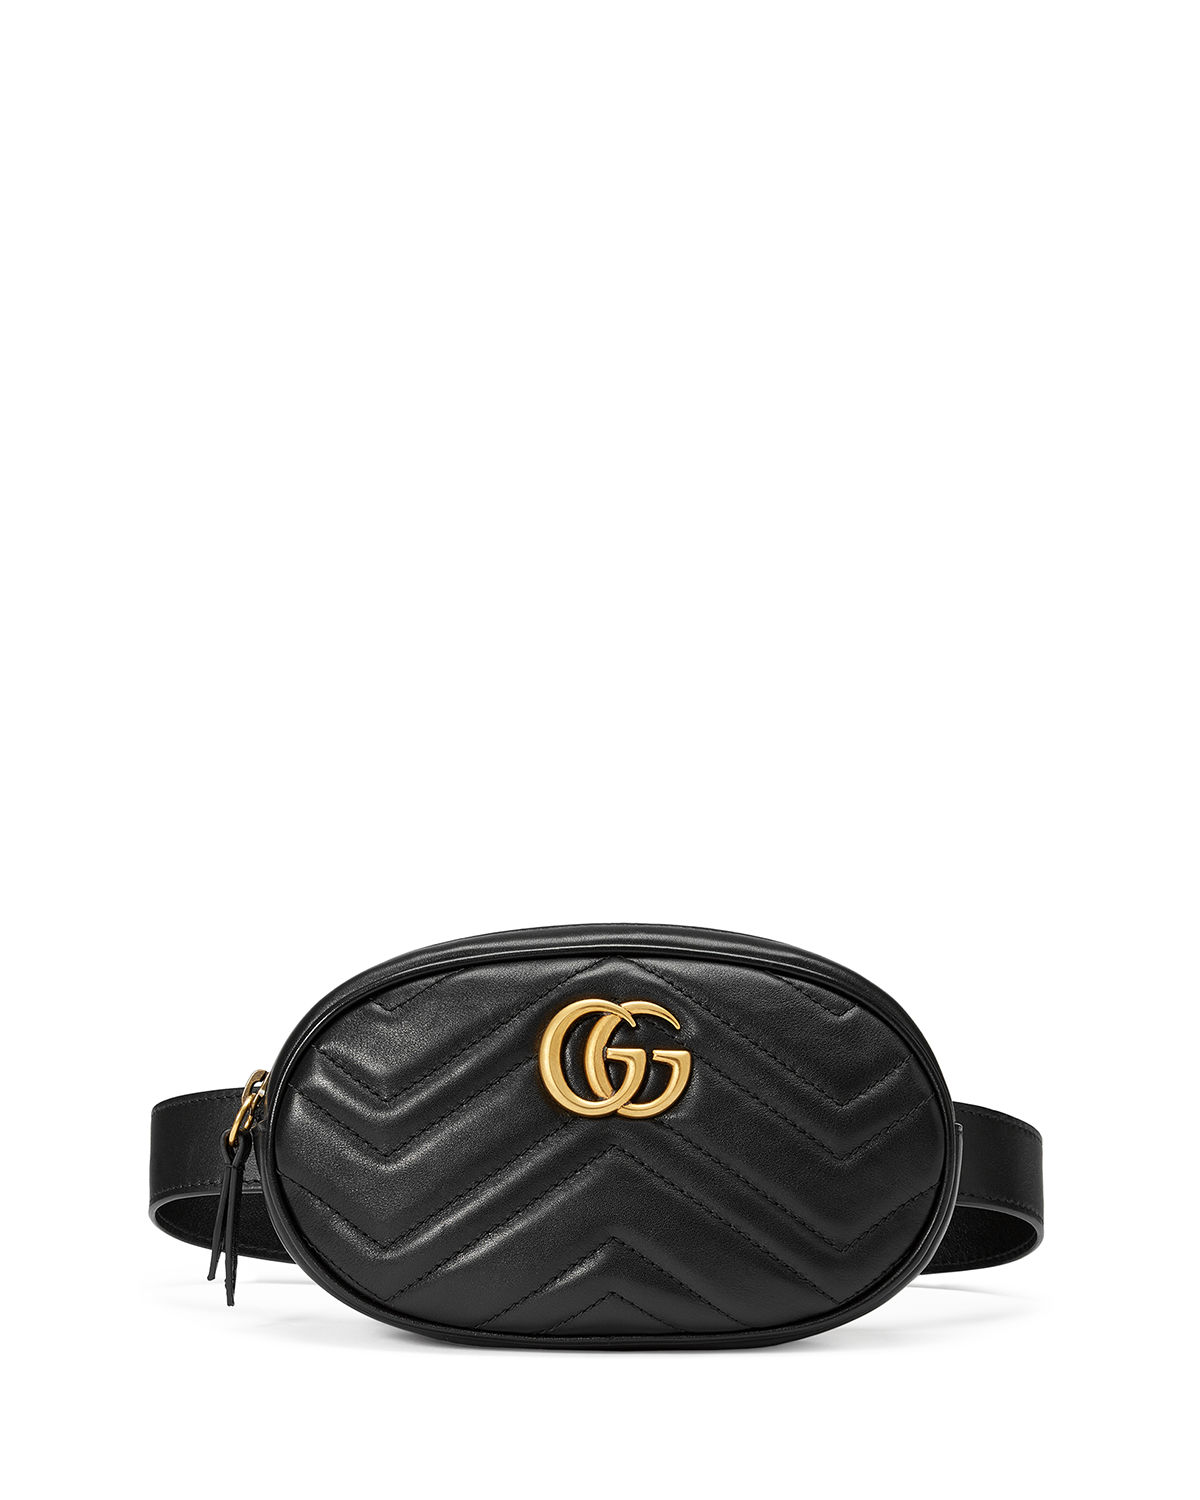 55d8ad3cefc Gucci GG Marmont Small Matelasse Leather Belt Bag